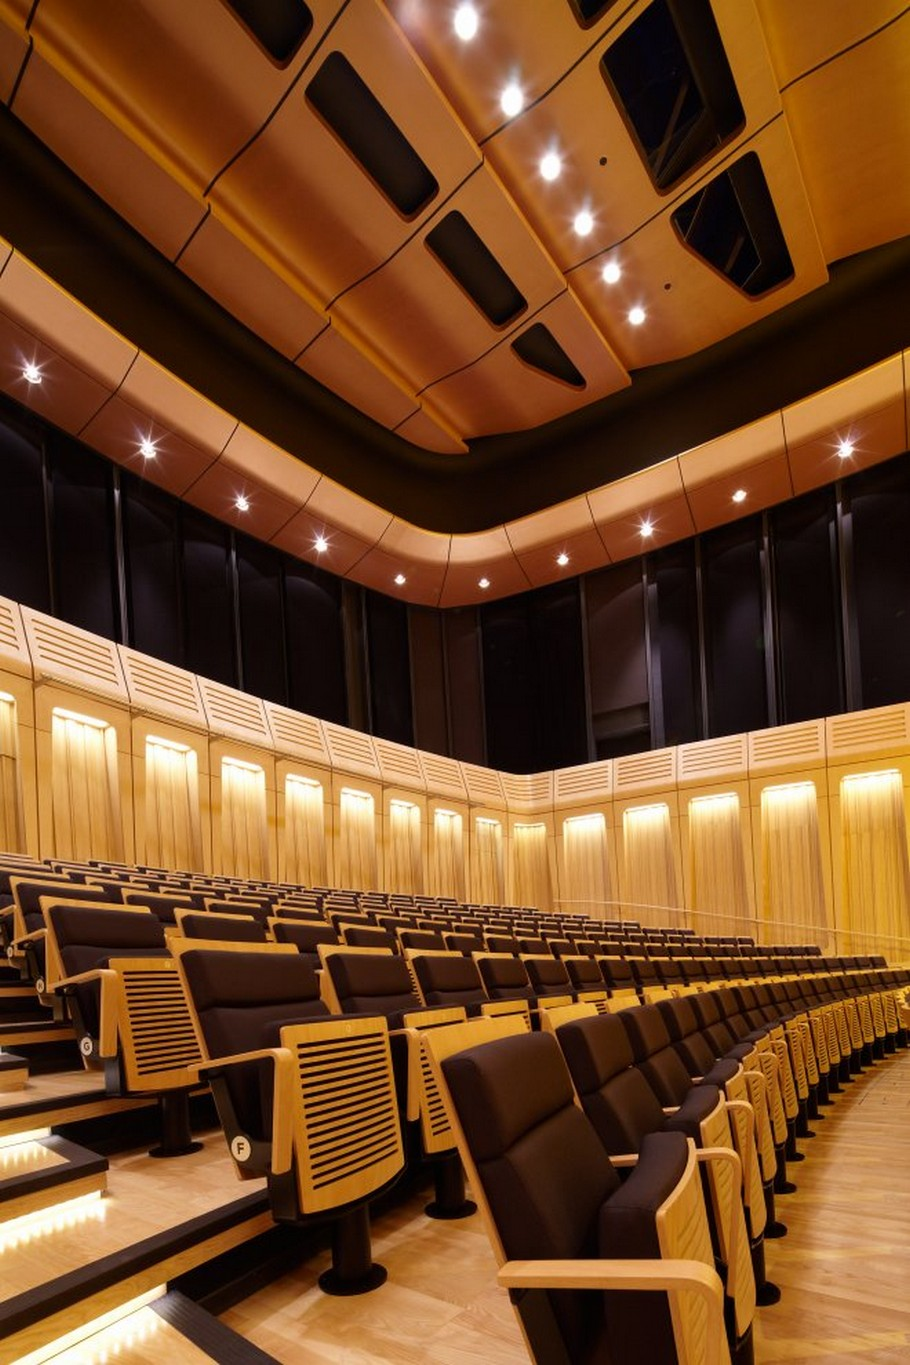 10 Royal Welsh College of Music and Drama by BFLS